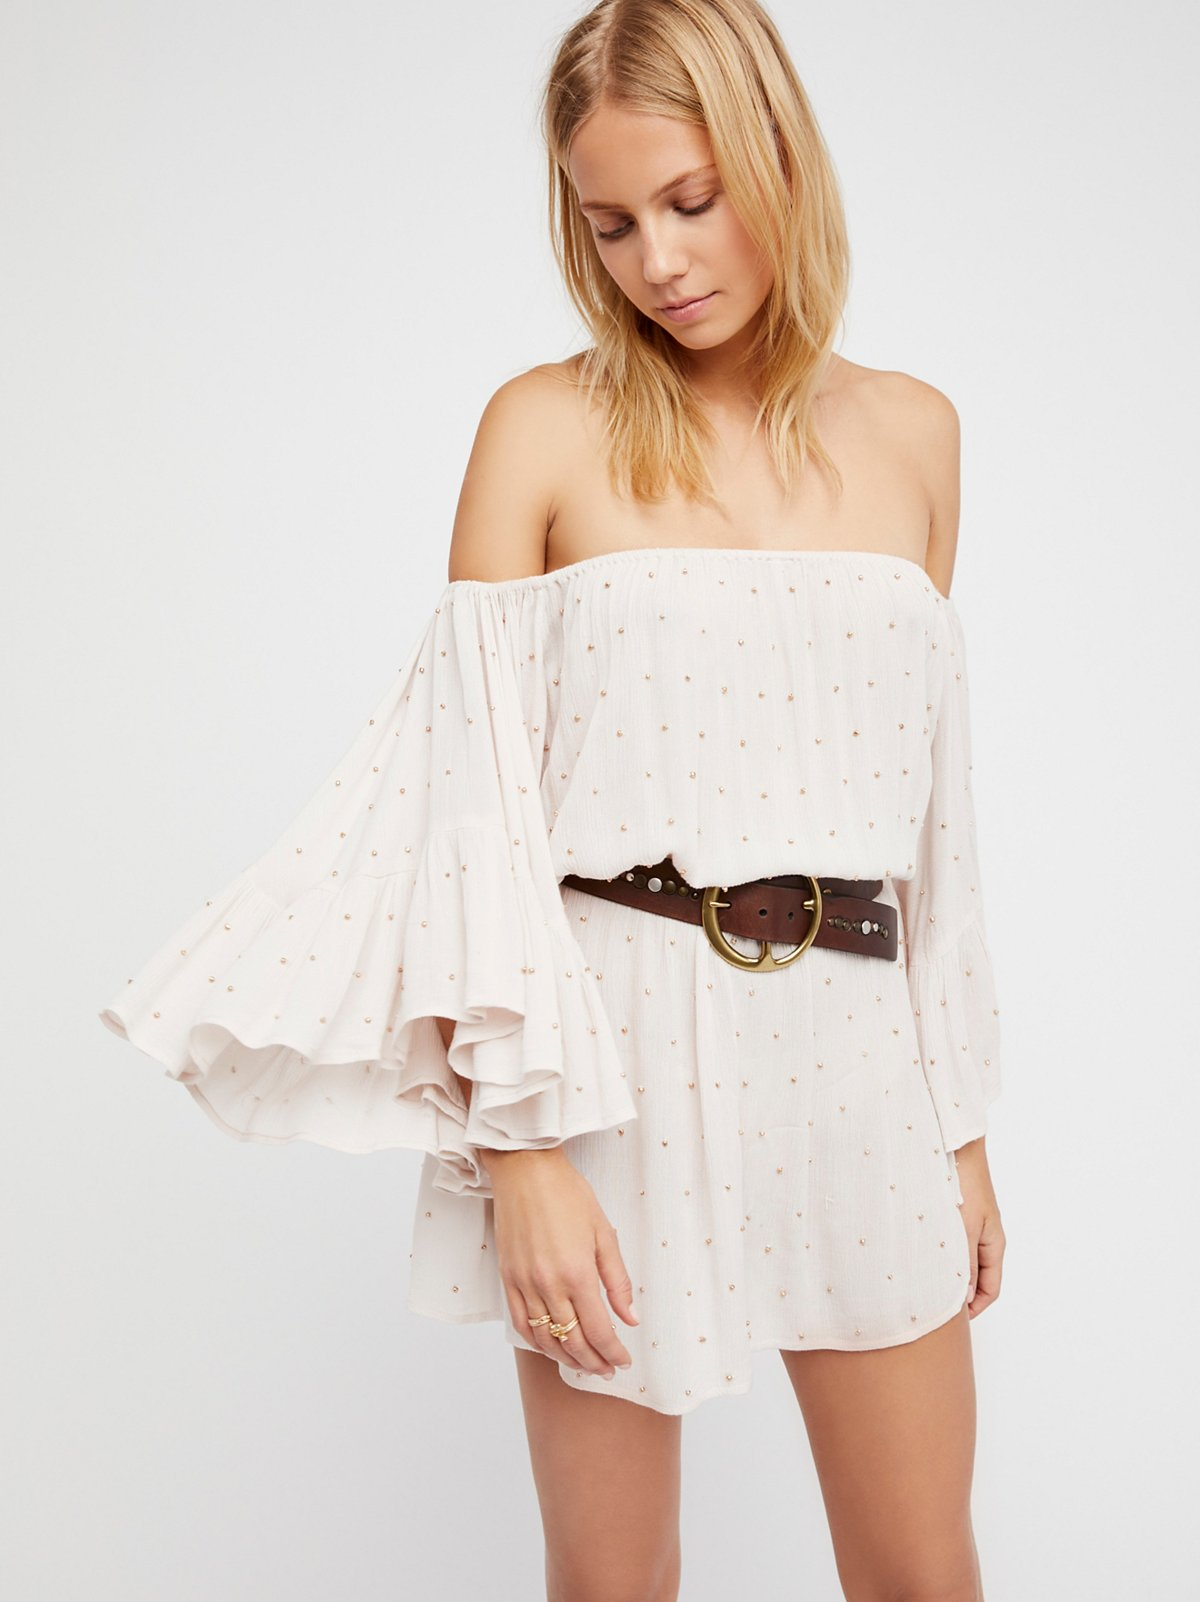 Hold On Tight Embellished Top